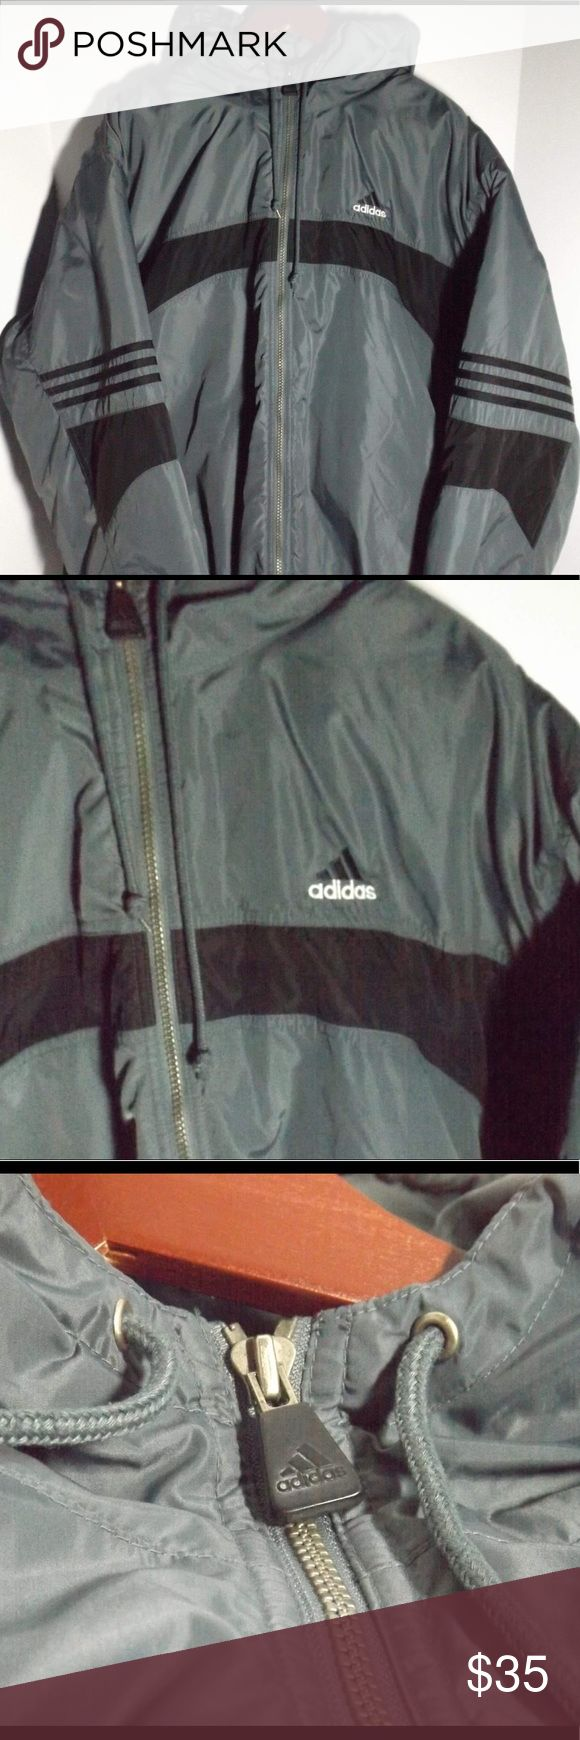 Authentic ADIDAS Winter Coat This ADIDAS winter coat is ready for the cold. It'll keep you warm no matter what. Also, the quality ADIDAS delivers is perfect. This jacket will last a life time. The famous three stripe embroidering on the sleeves let's everyone know you are wearing one of the best brands out there. This jacket goes great with your favorite pair of denims and is good for any occasion. Adidas by Stella McCartney Jackets & Coats Ski & Snowboard